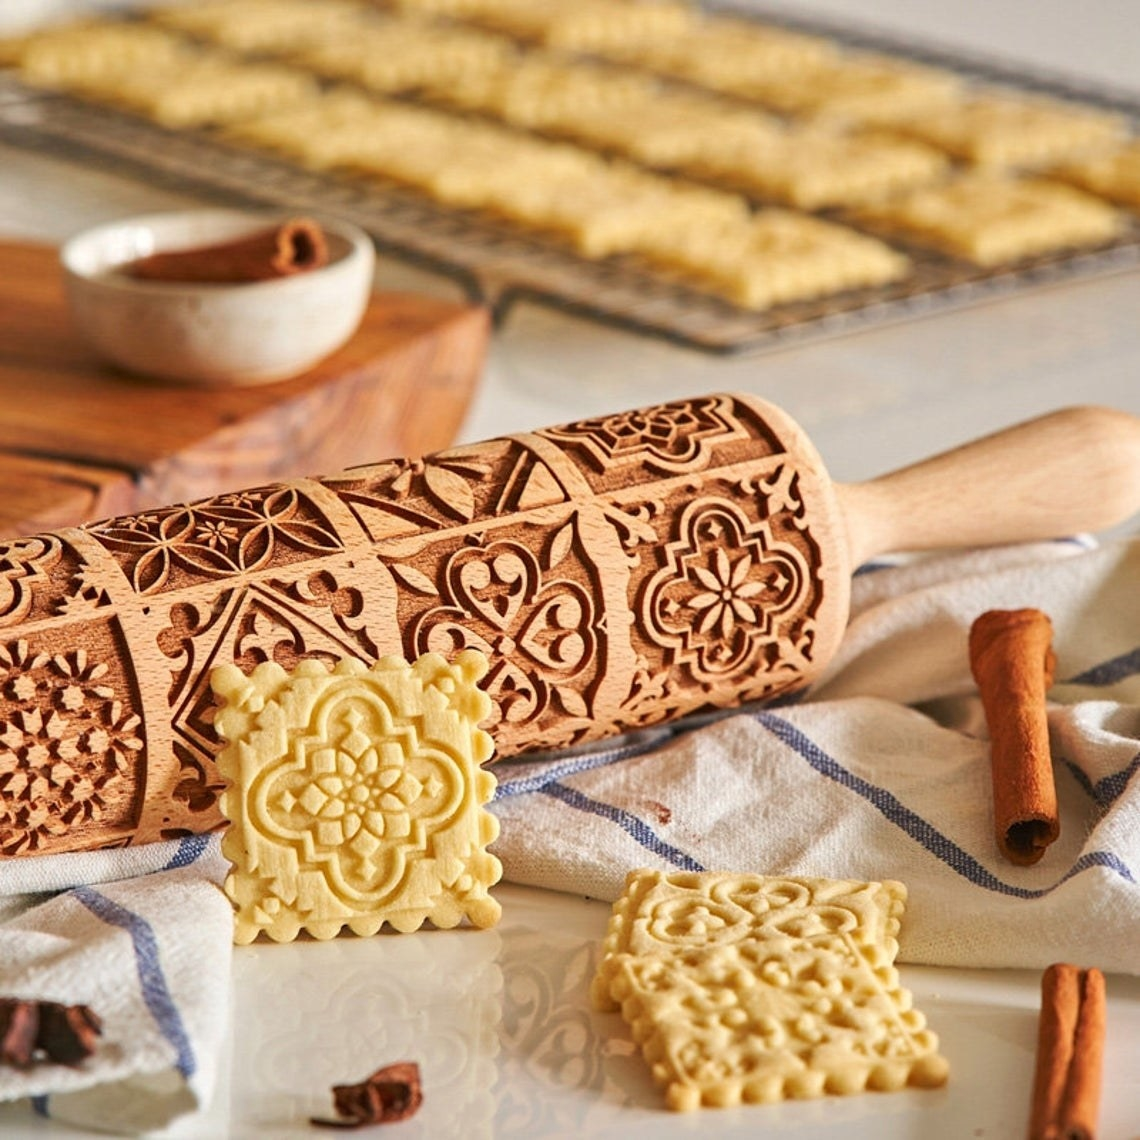 A rolling pin engraved with patterns for detailed pastry work